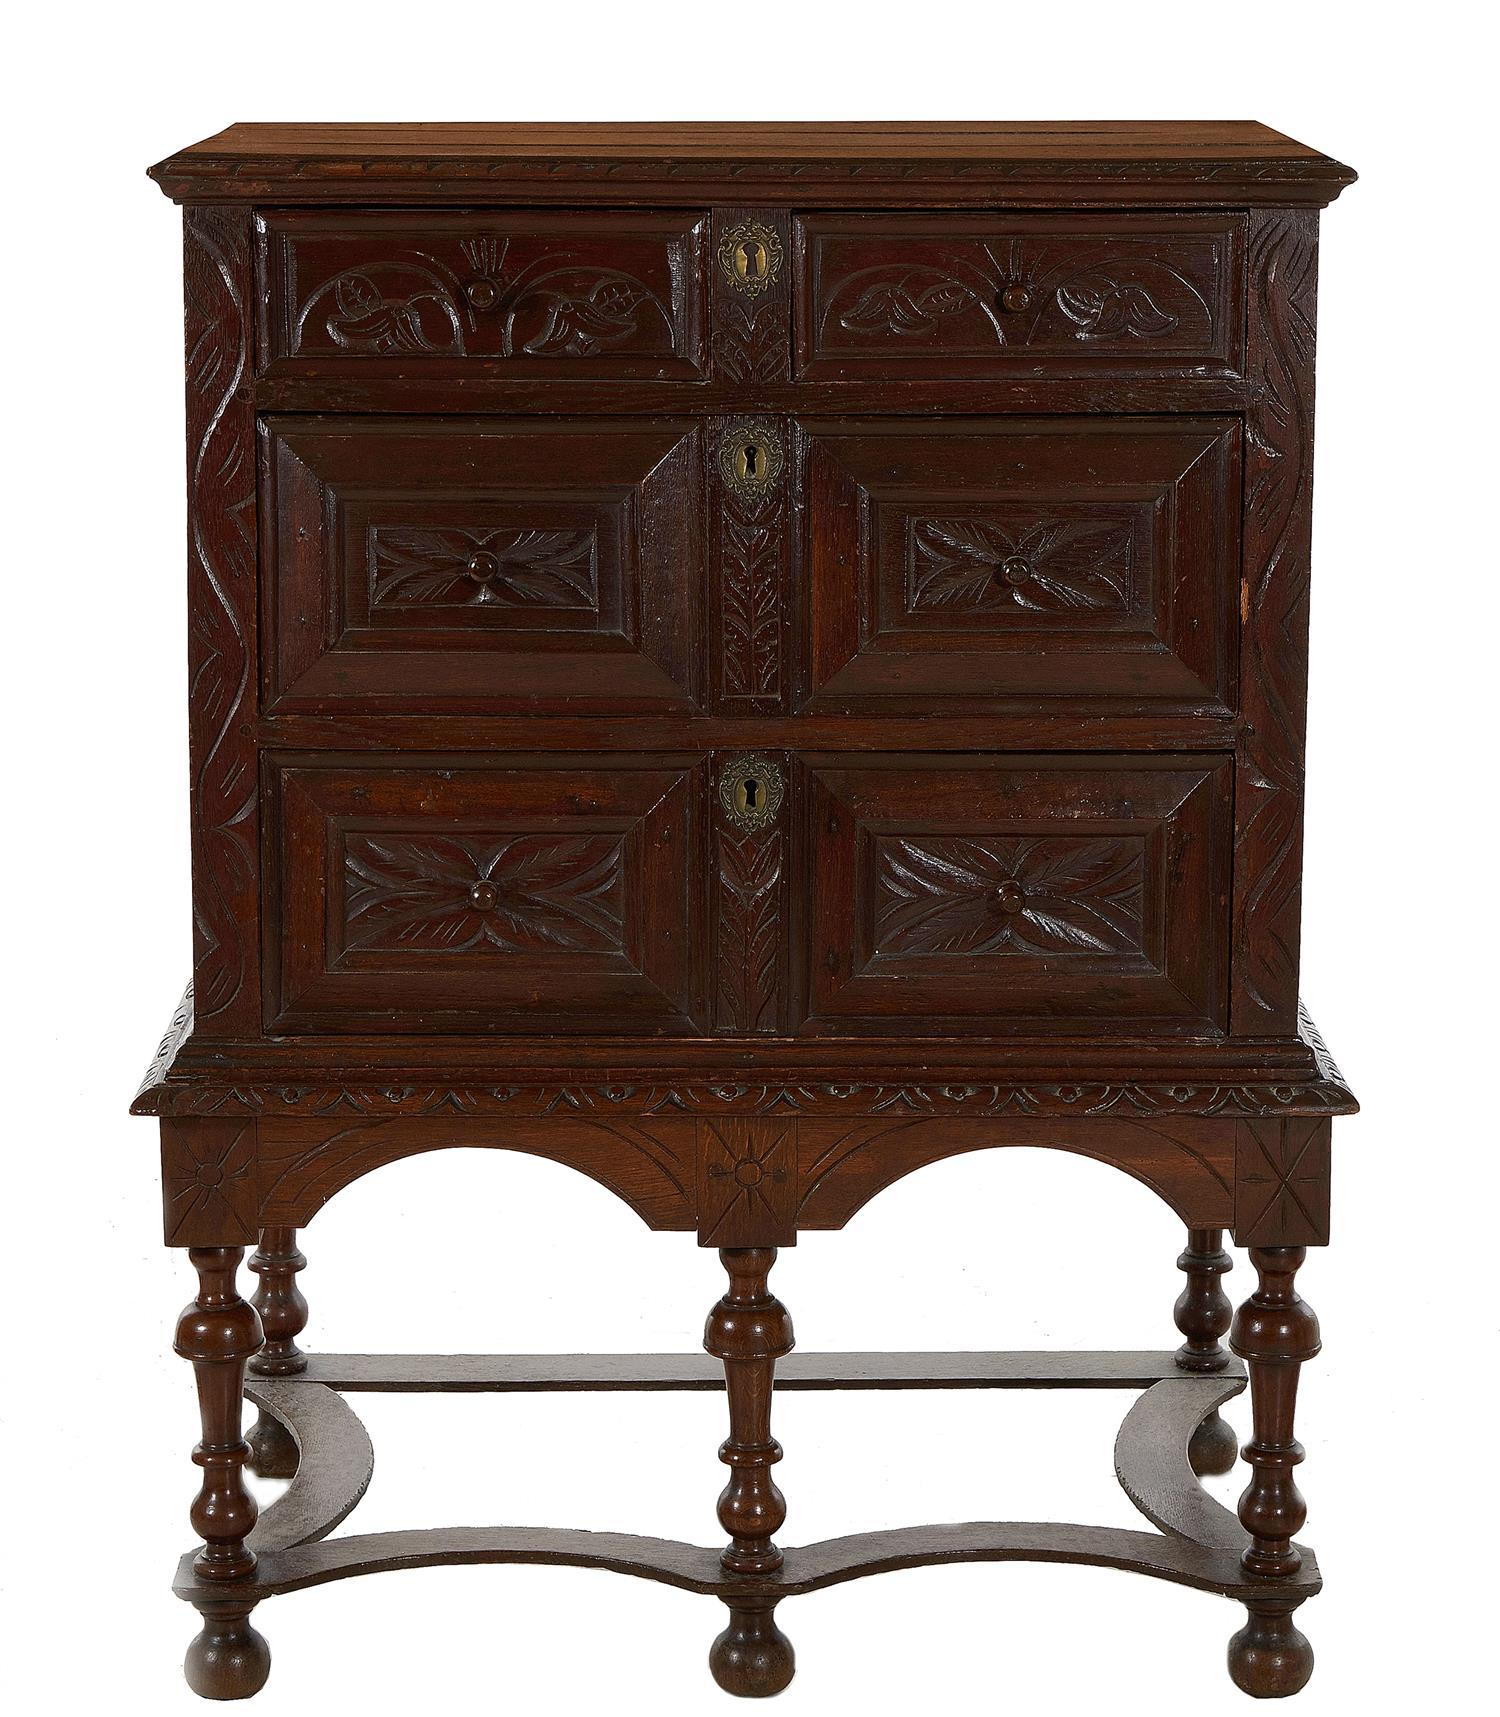 Jacobean pine chest on stand